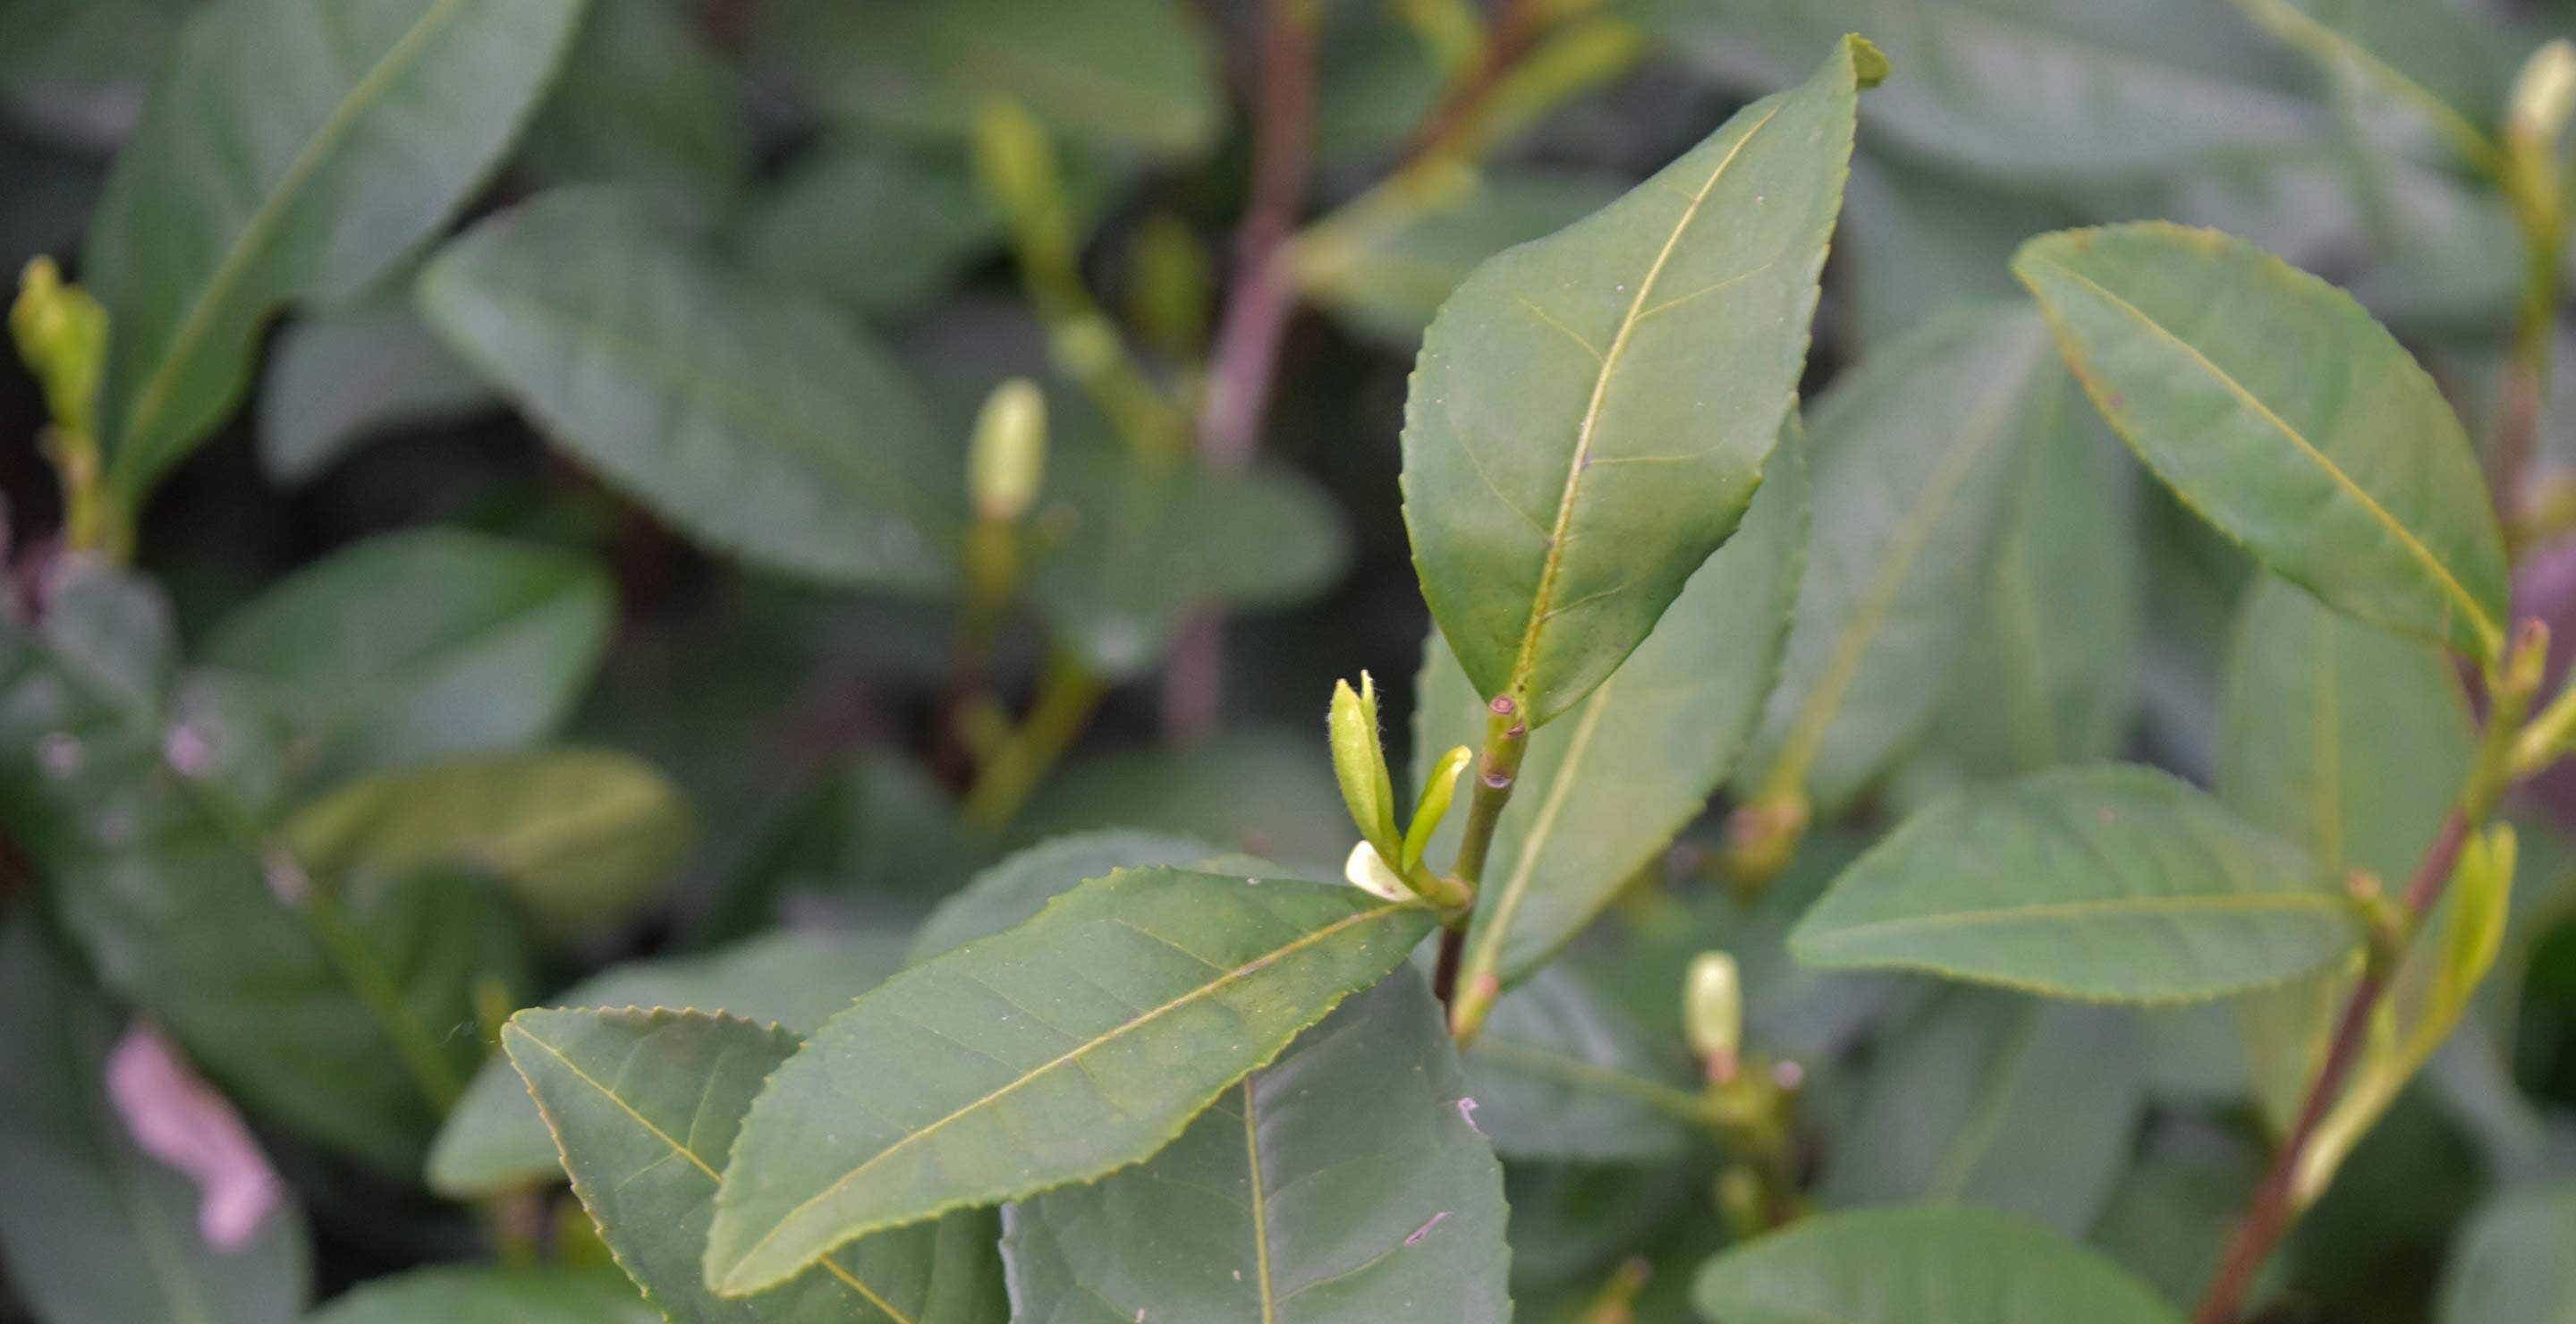 little tea buds growing in the spring